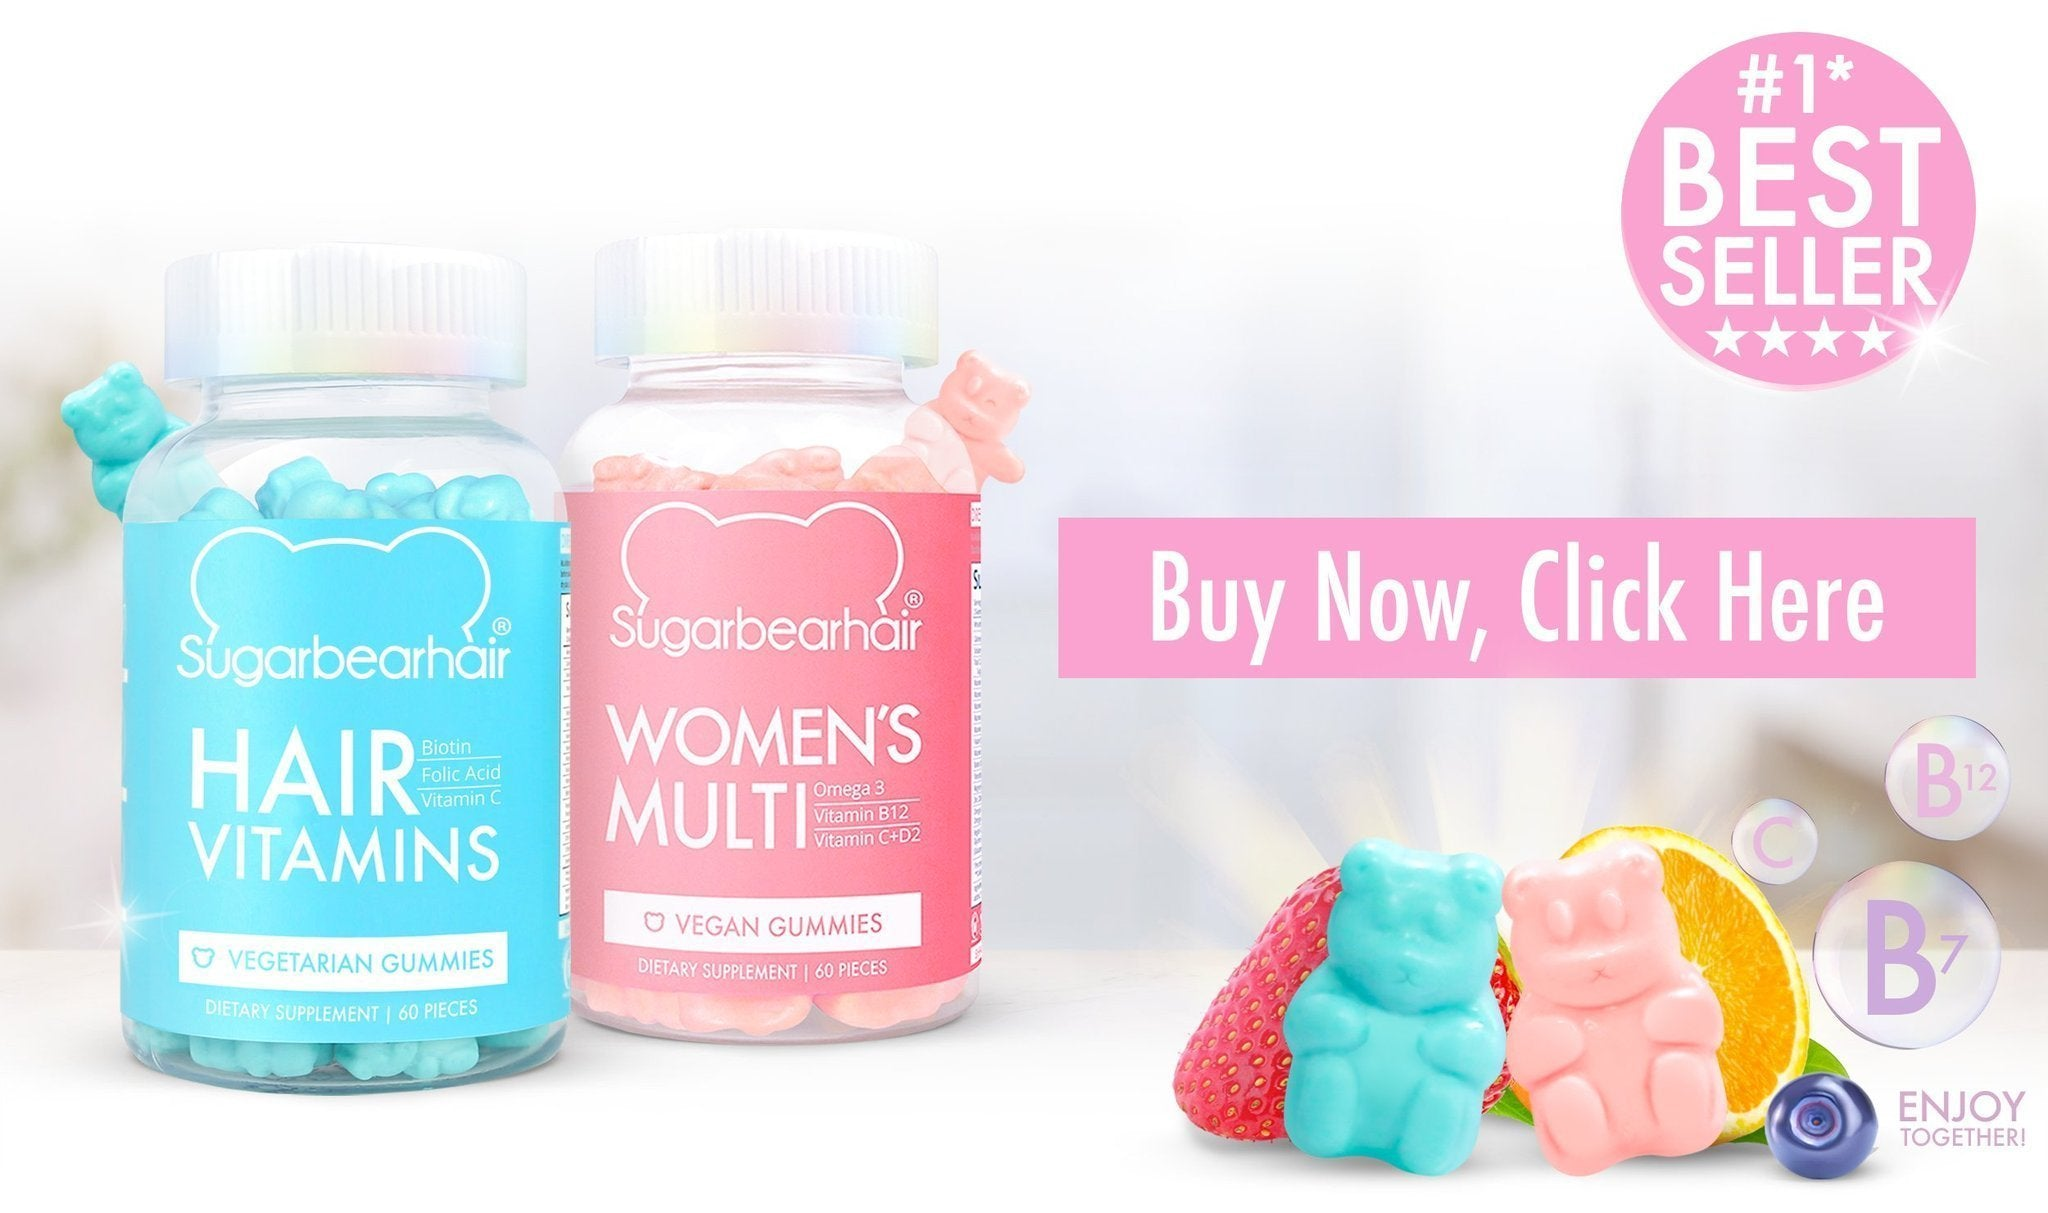 SugarBearHair com - Revolutionary Hair Vitamins